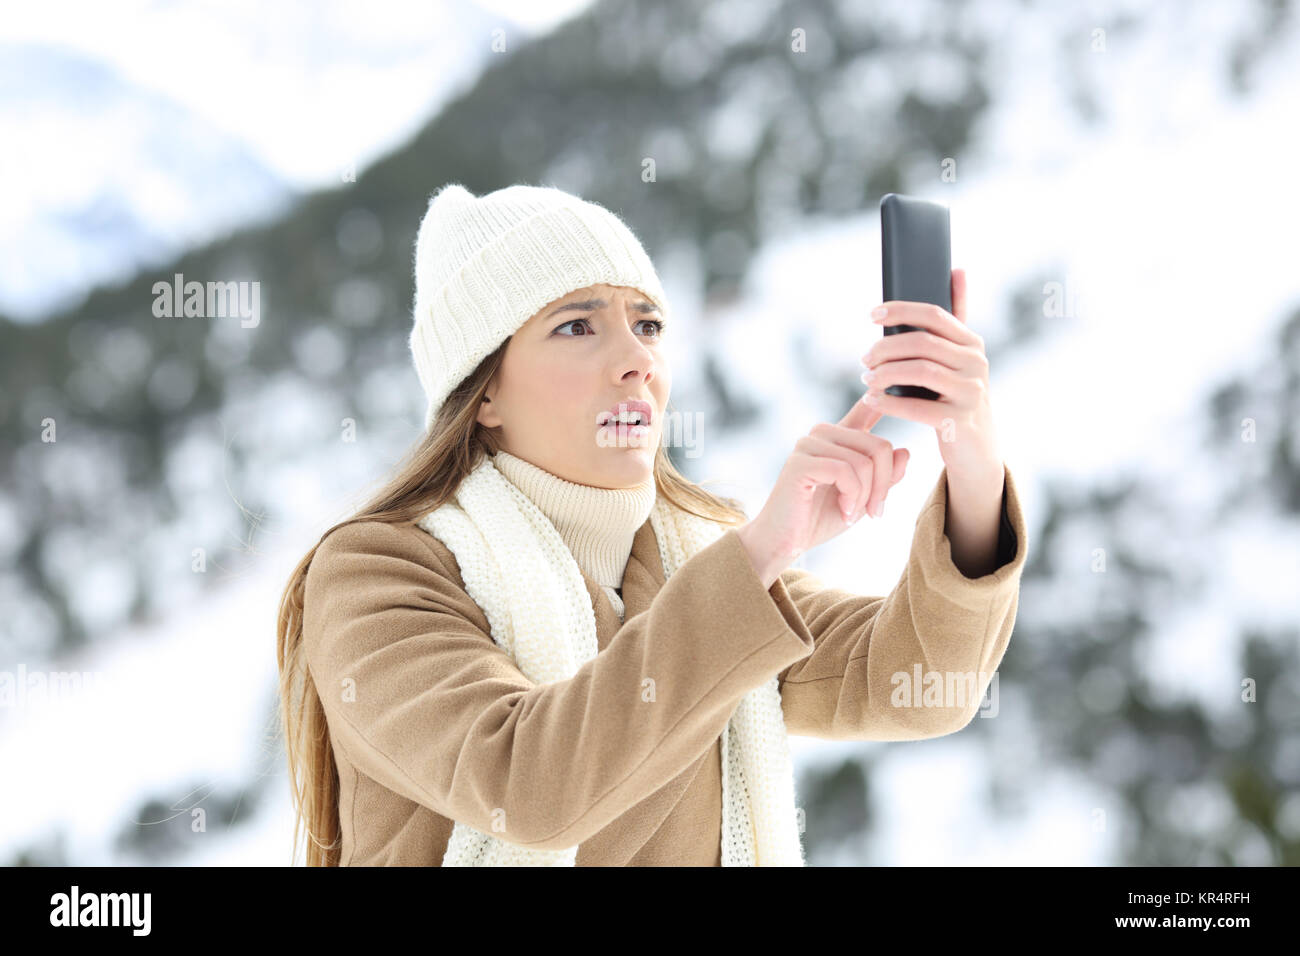 Desperate woman searching mobile phone coverage in winter holidays in a snowy mountain - Stock Image